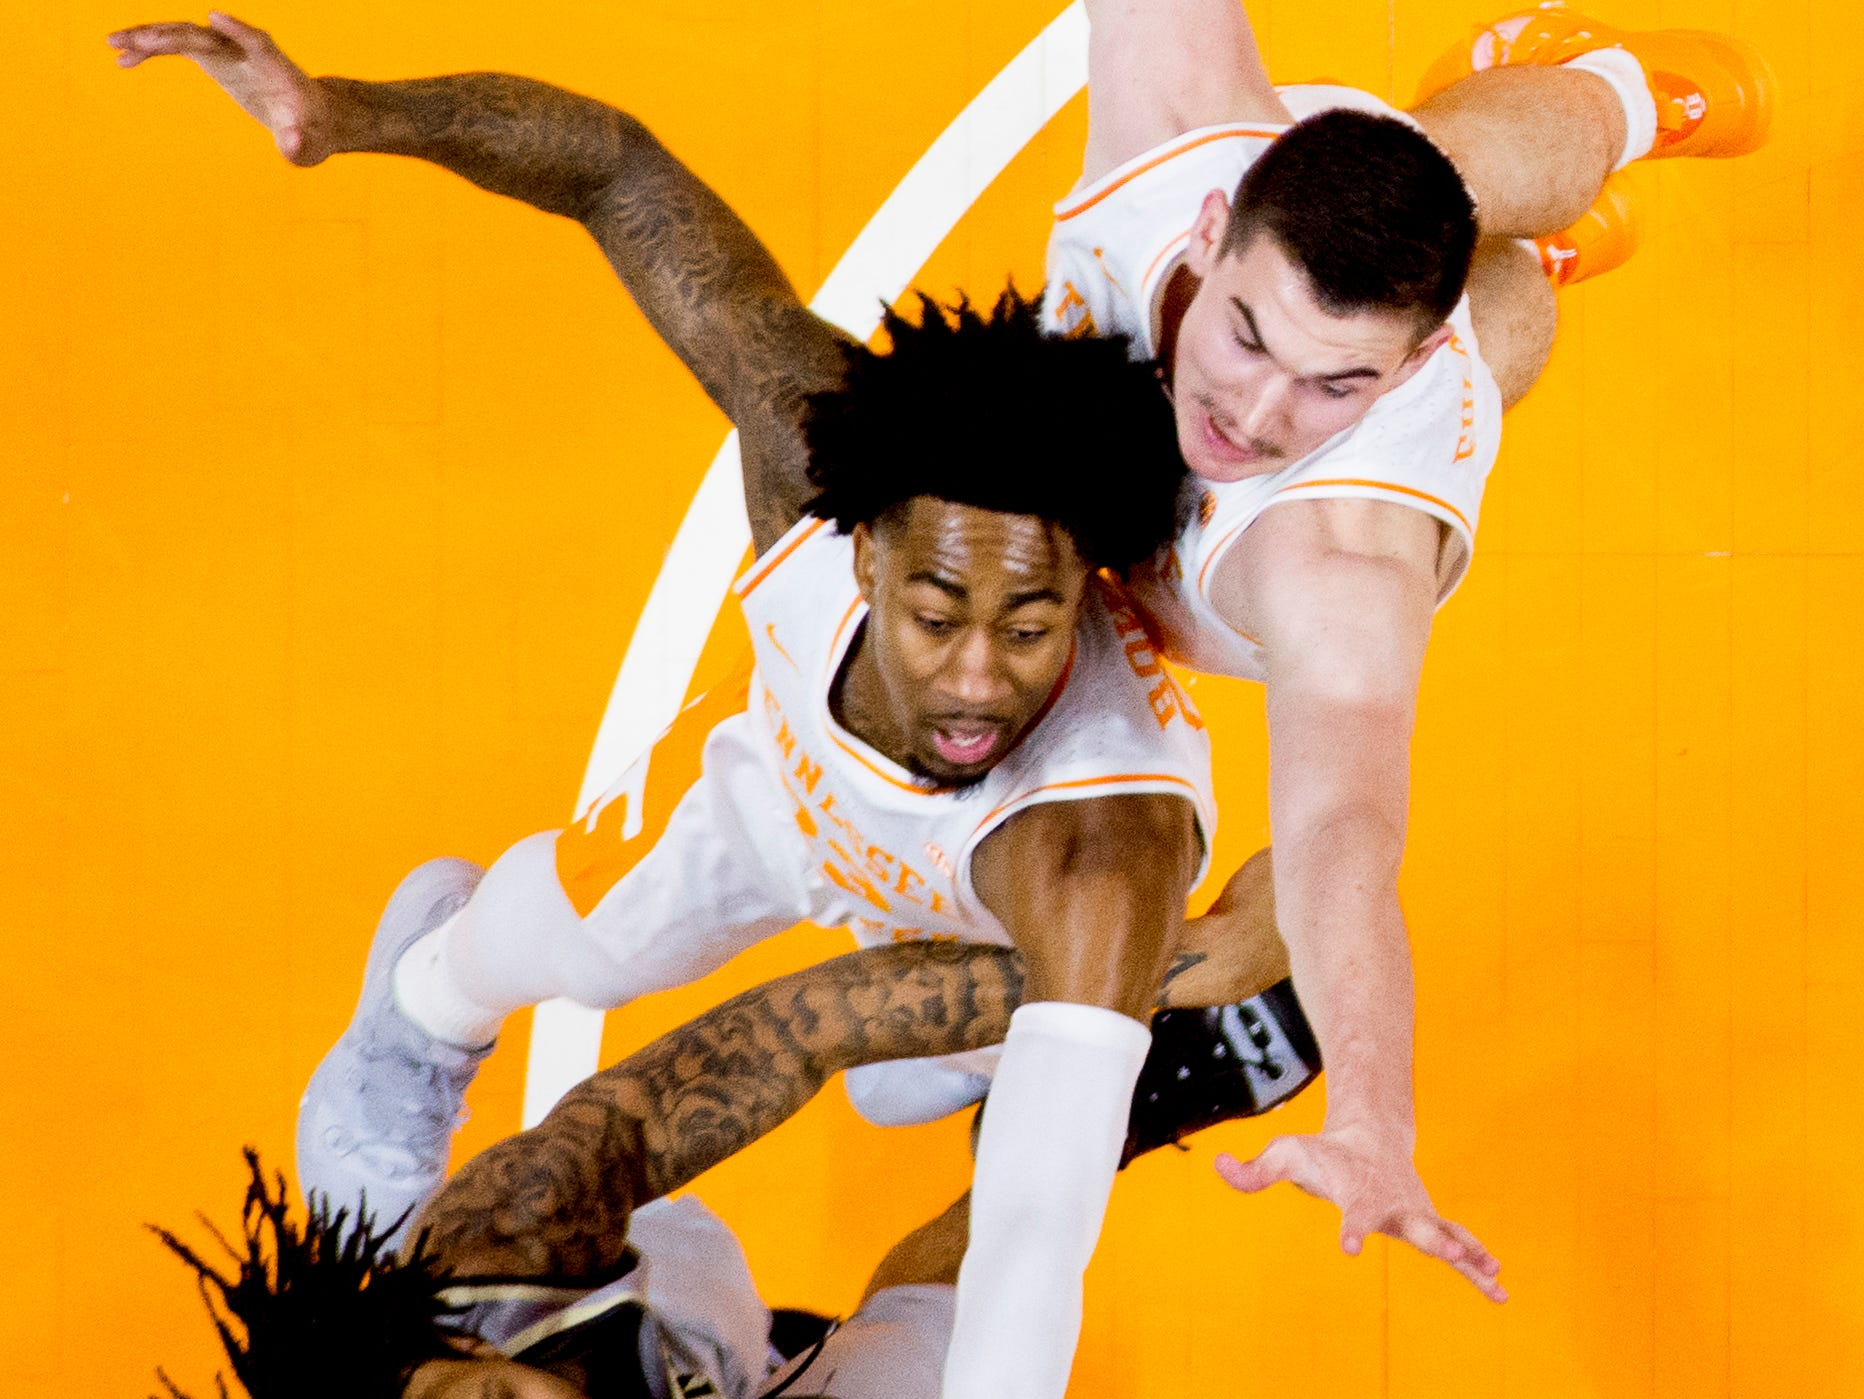 Tennessee guard Jordan Bowden (23) and Tennessee forward Kyle Alexander (11) defend against Wake Forest guard Sharon Wright Jr. (2) during a game between Tennessee and Wake Forest at Thompson-Boling Arena in Knoxville, Tennessee on Saturday, December 22, 2018.